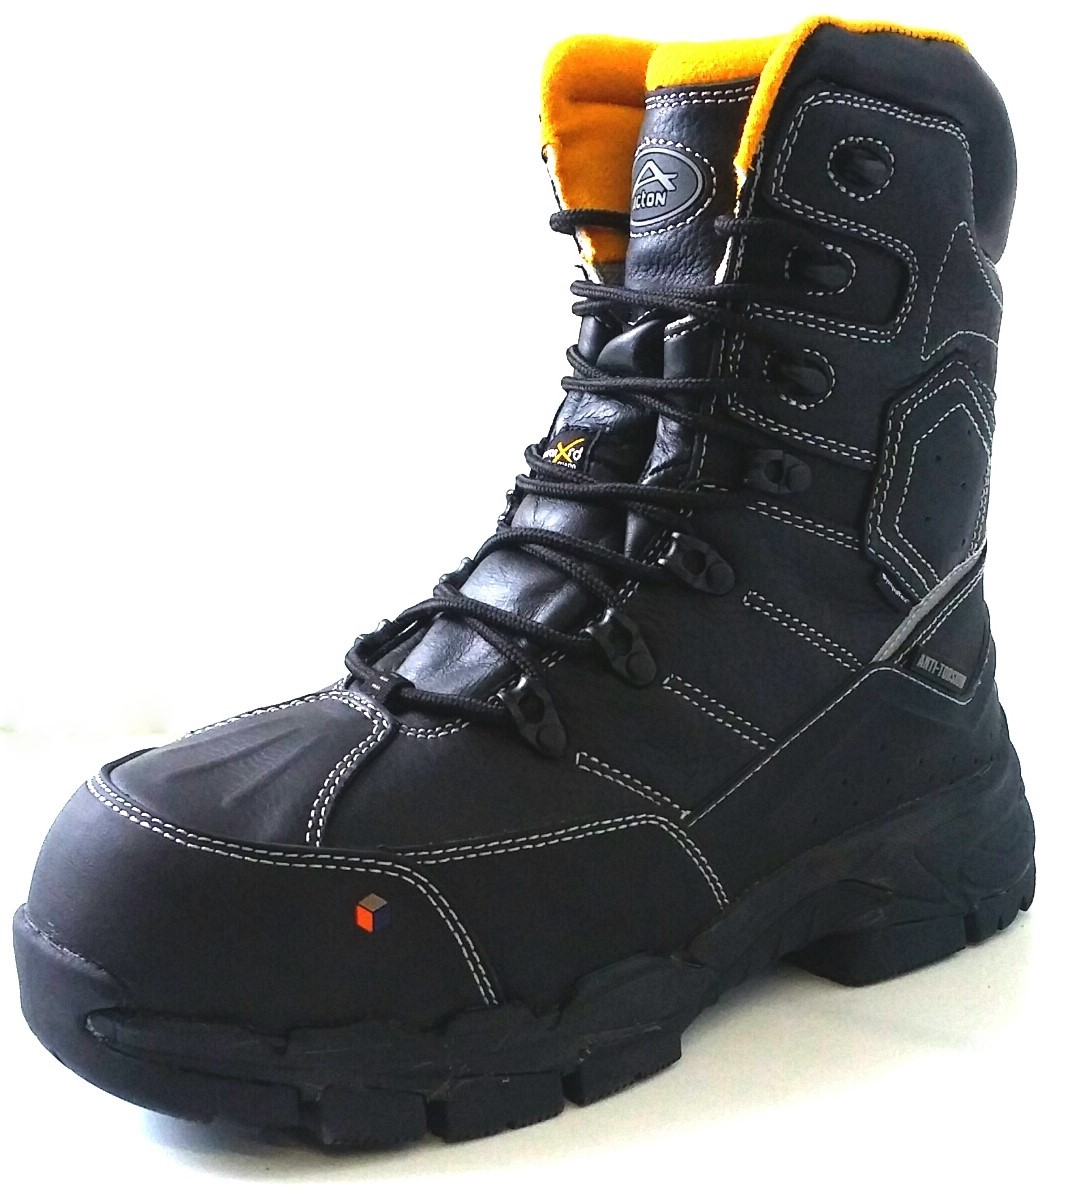 Acton Cannonball boot